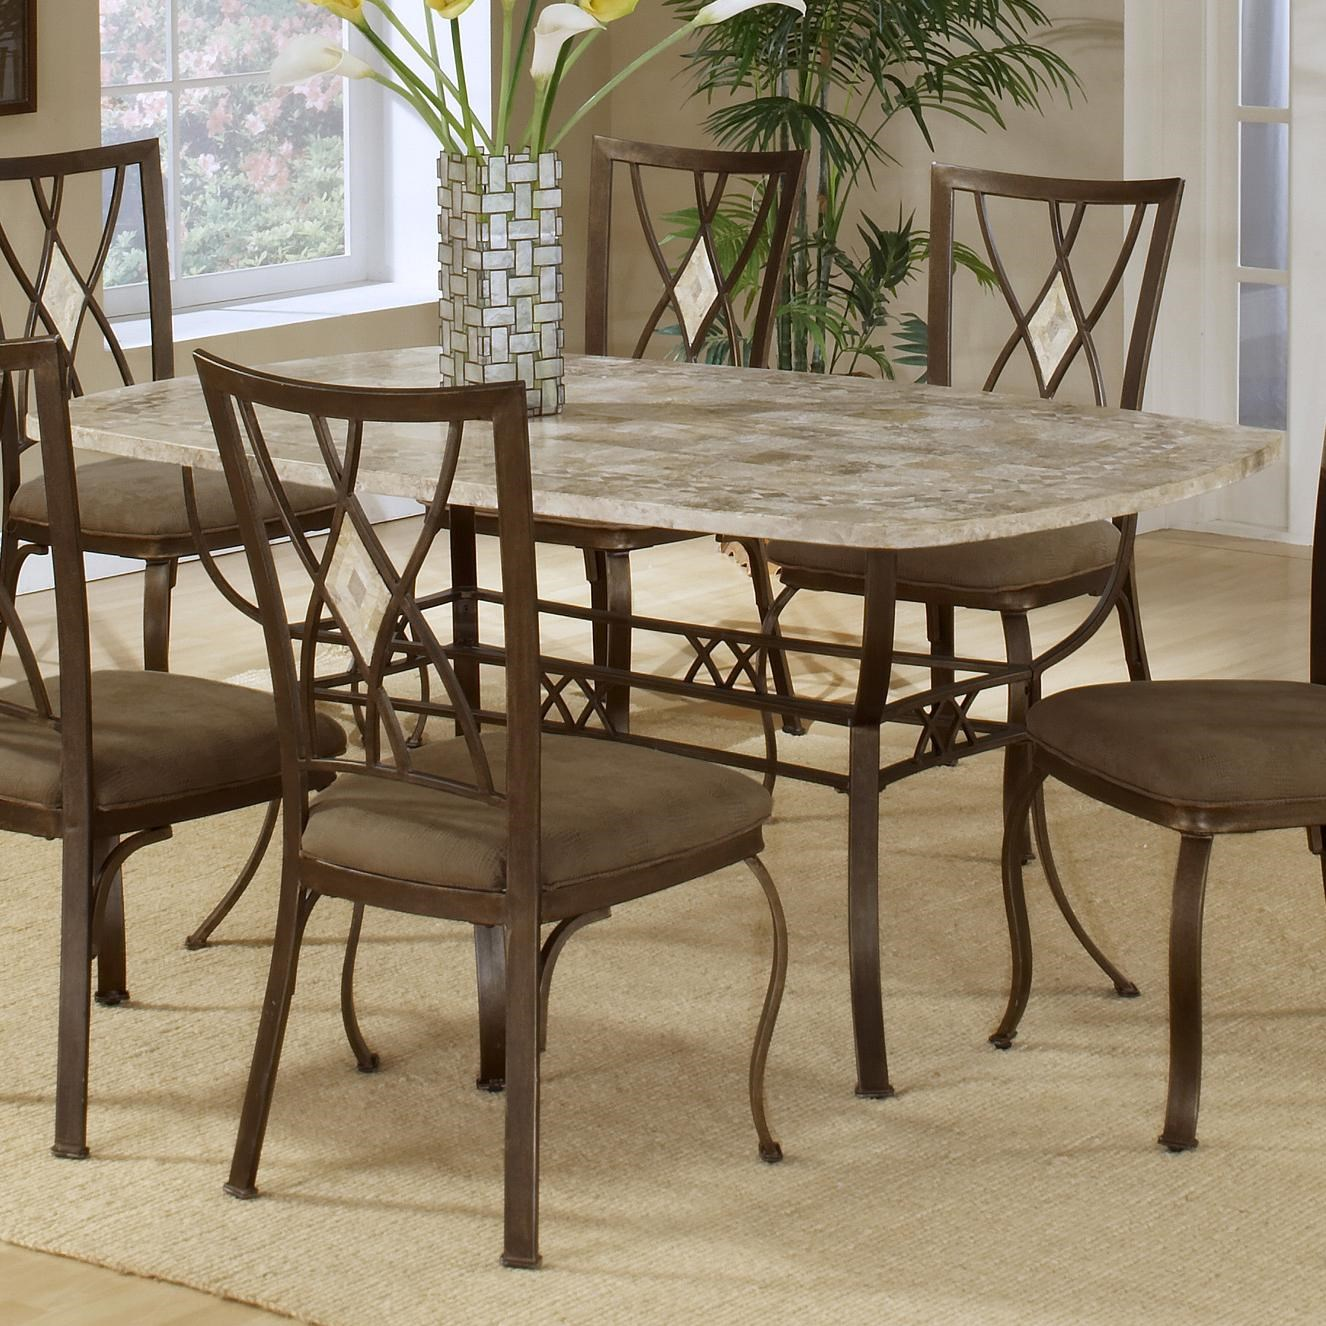 Elegant Hillsdale BrooksideRectangle Dining Table